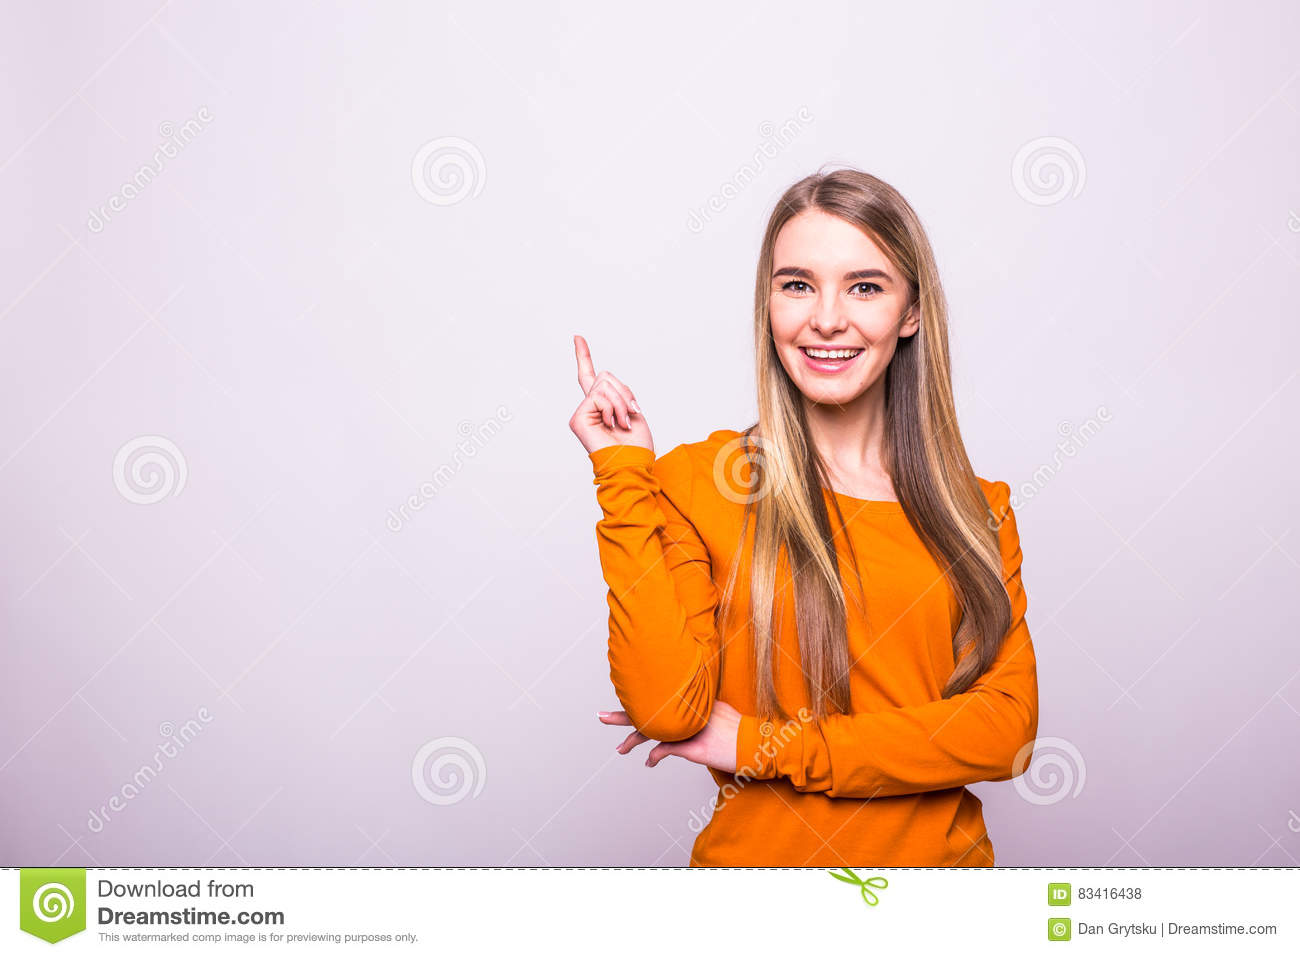 blonde girl in orange t-shirt pointed with finger up on white